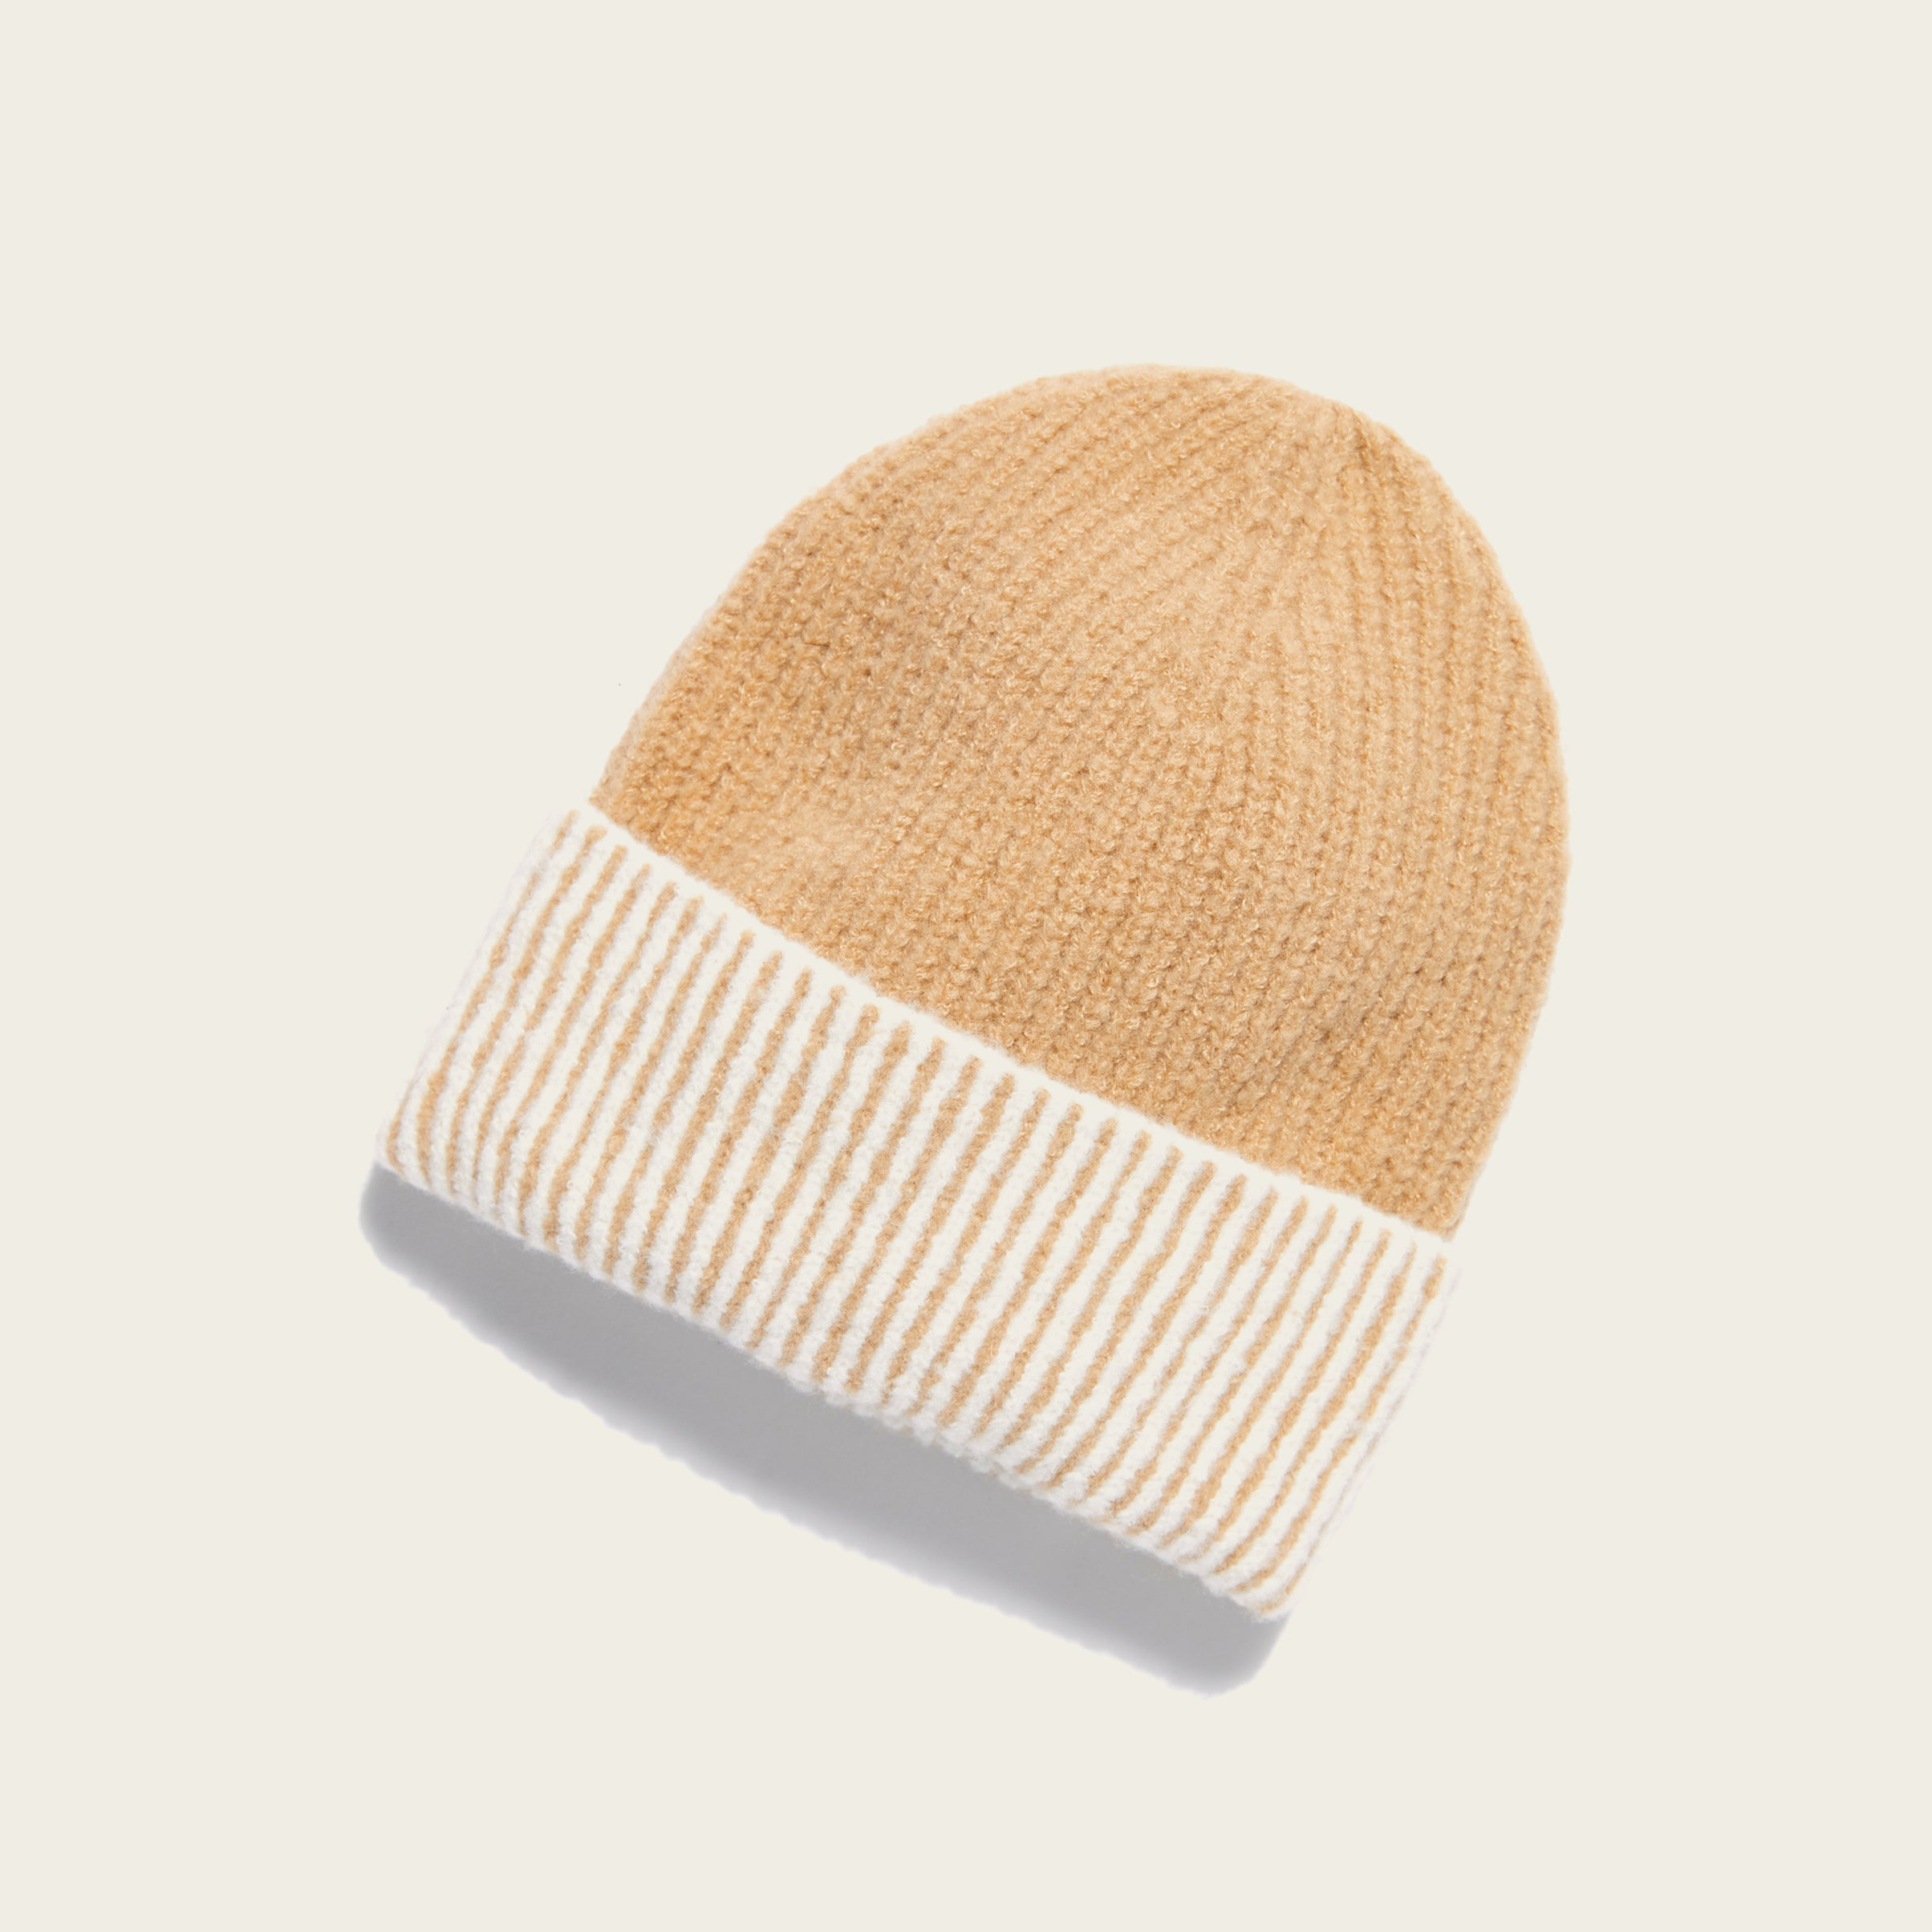 Straight Chill Beanie - Blackbird General Store